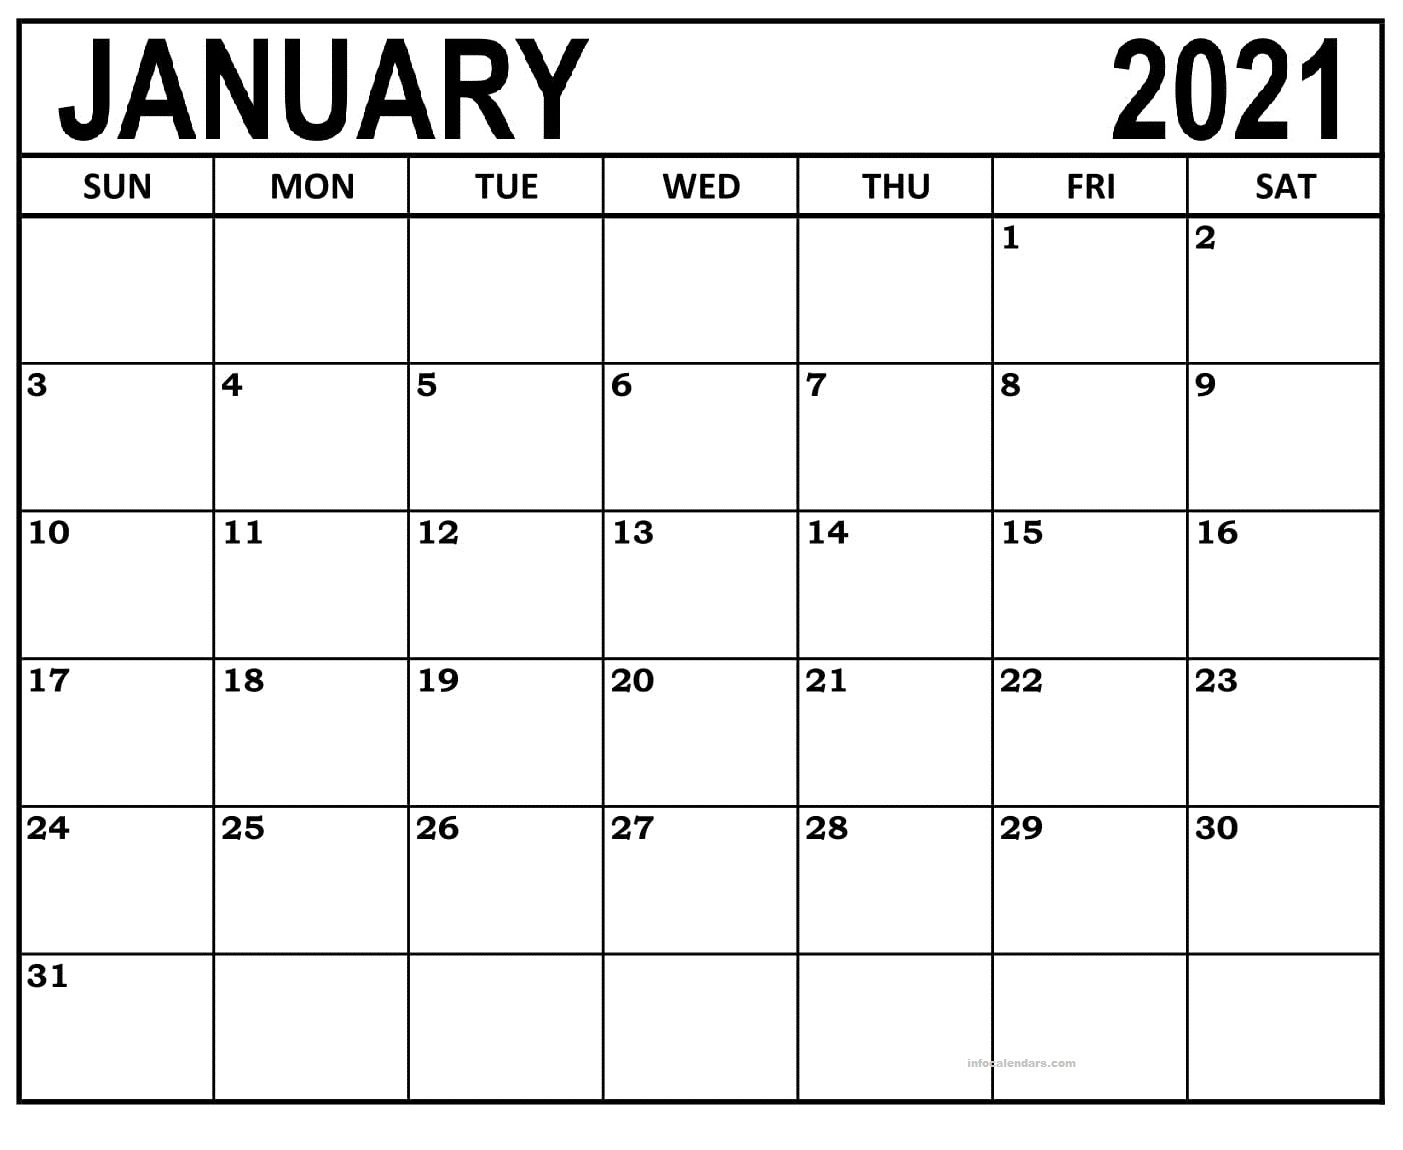 January 2021 Calendar Template Online